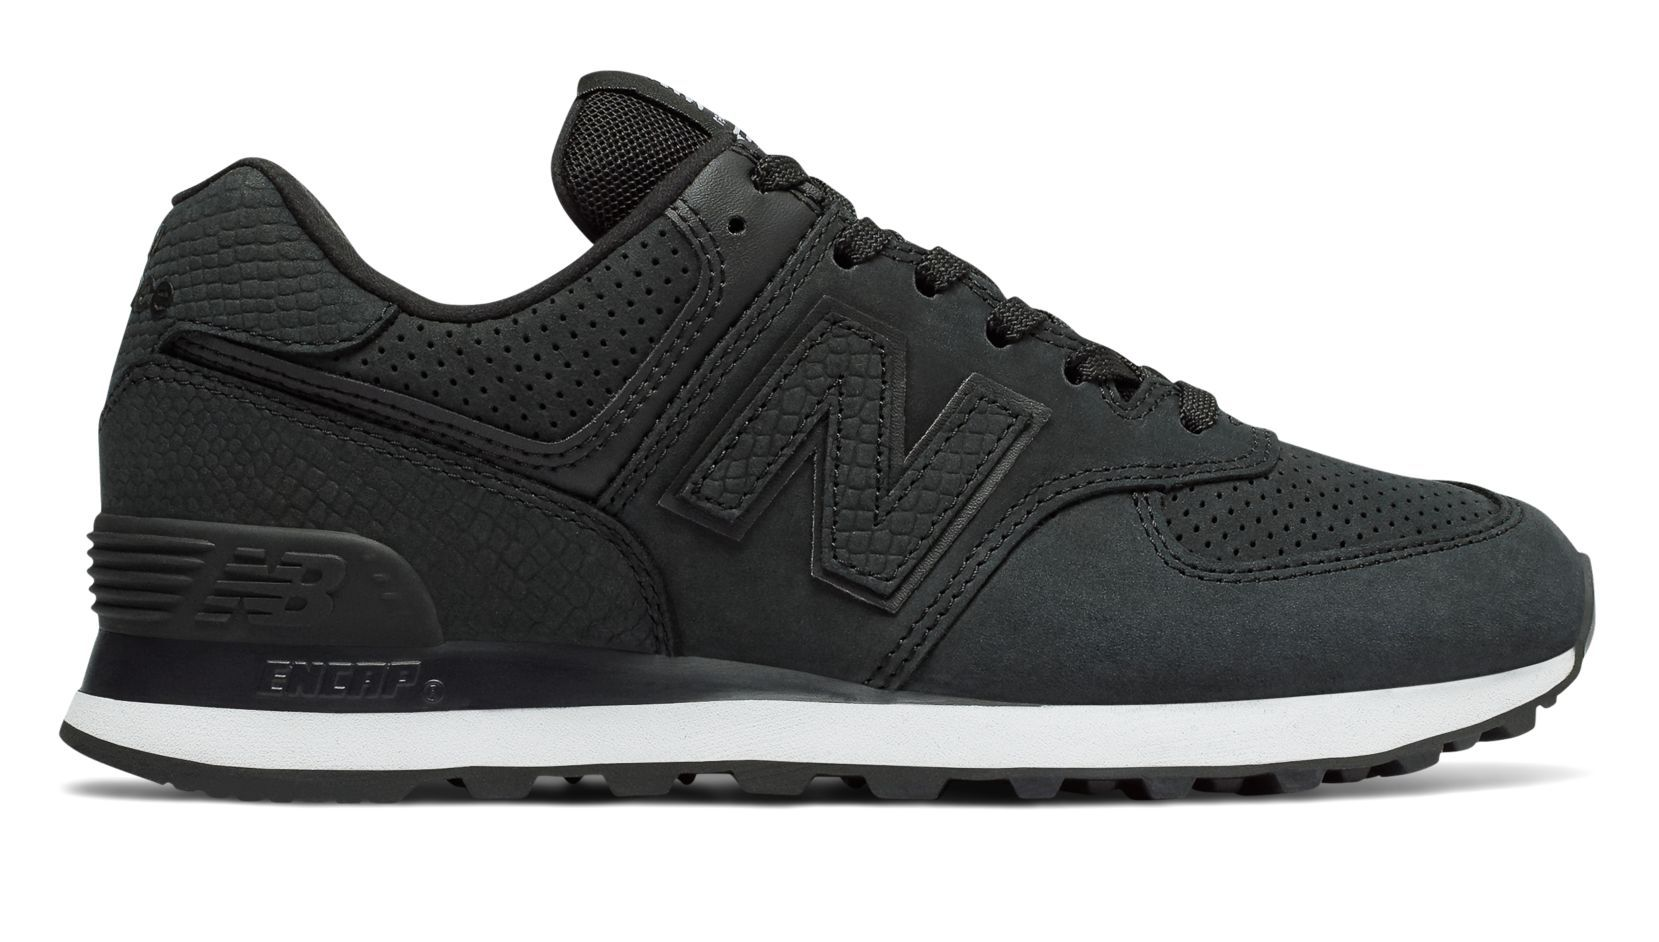 New Balance 574 Serpent Luxe, Black   School shoes, Sneakers, Shoes